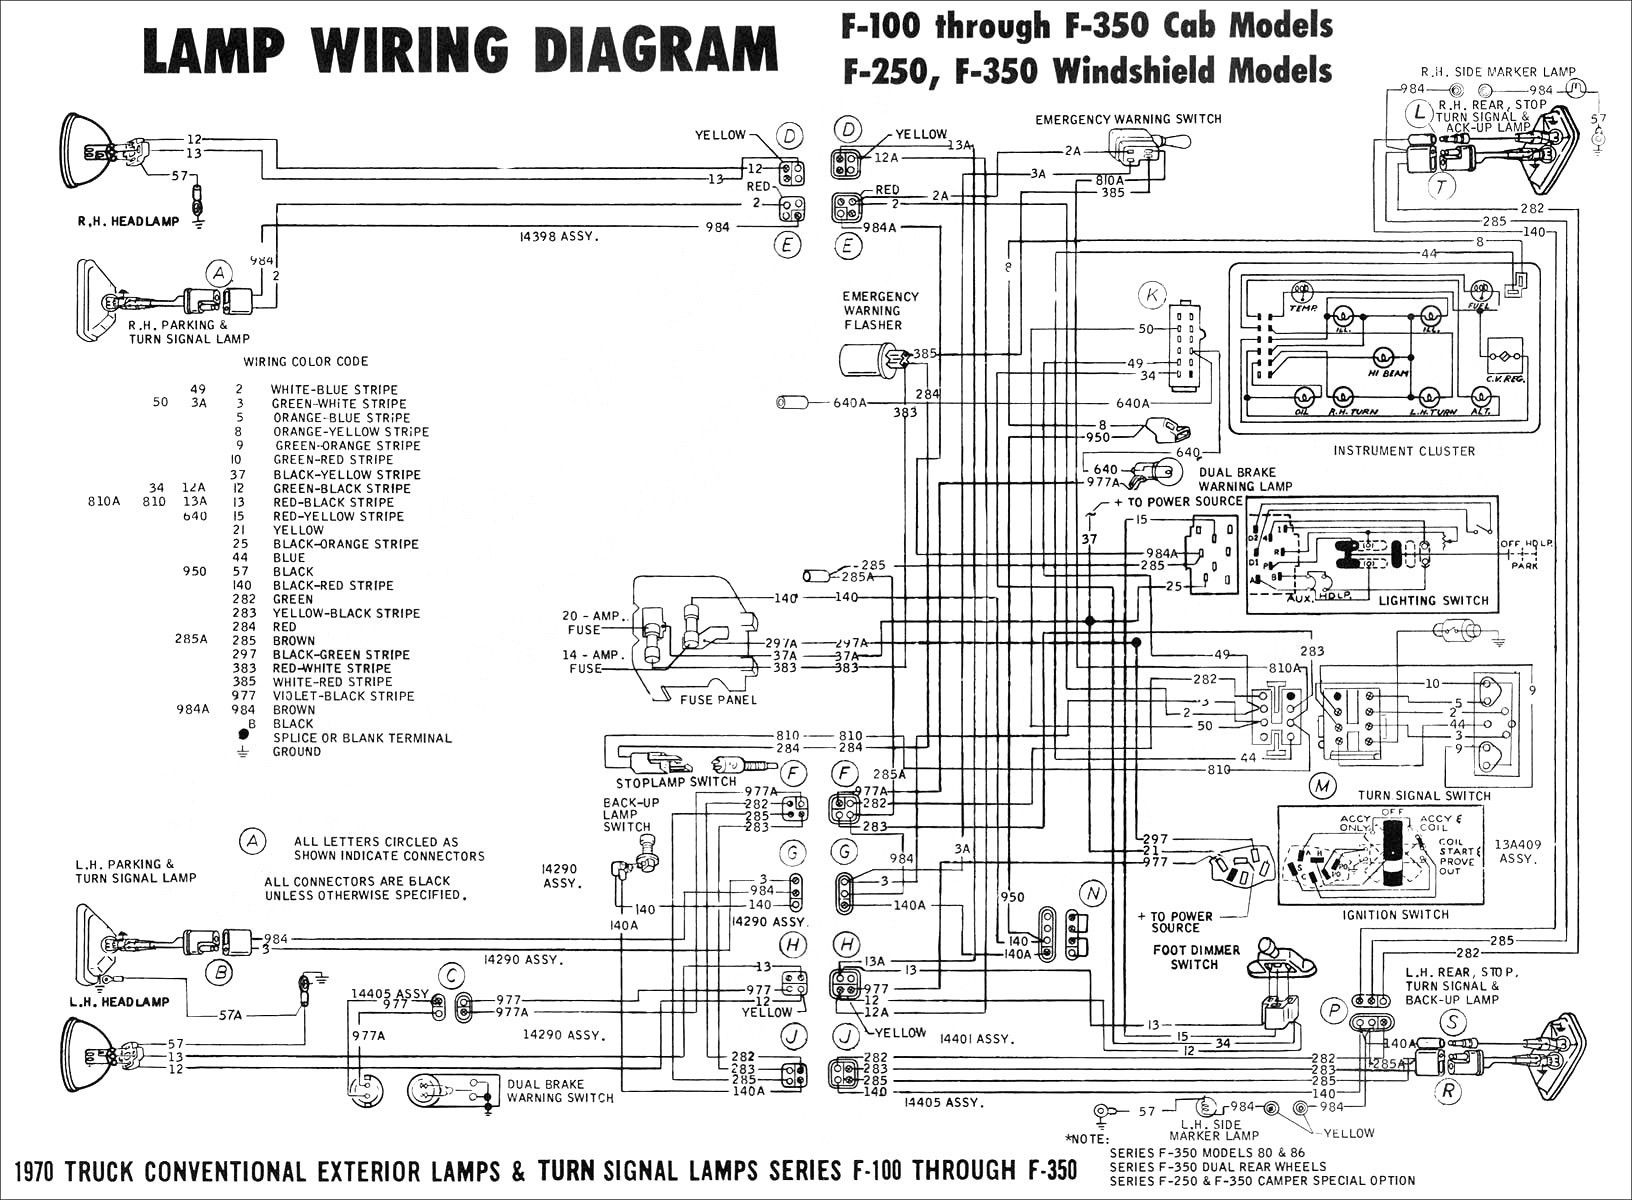 New Oxygen Sensor Wiring Diagram Ford In 2020 Electrical Wiring Diagram Diagram Trailer Wiring Diagram